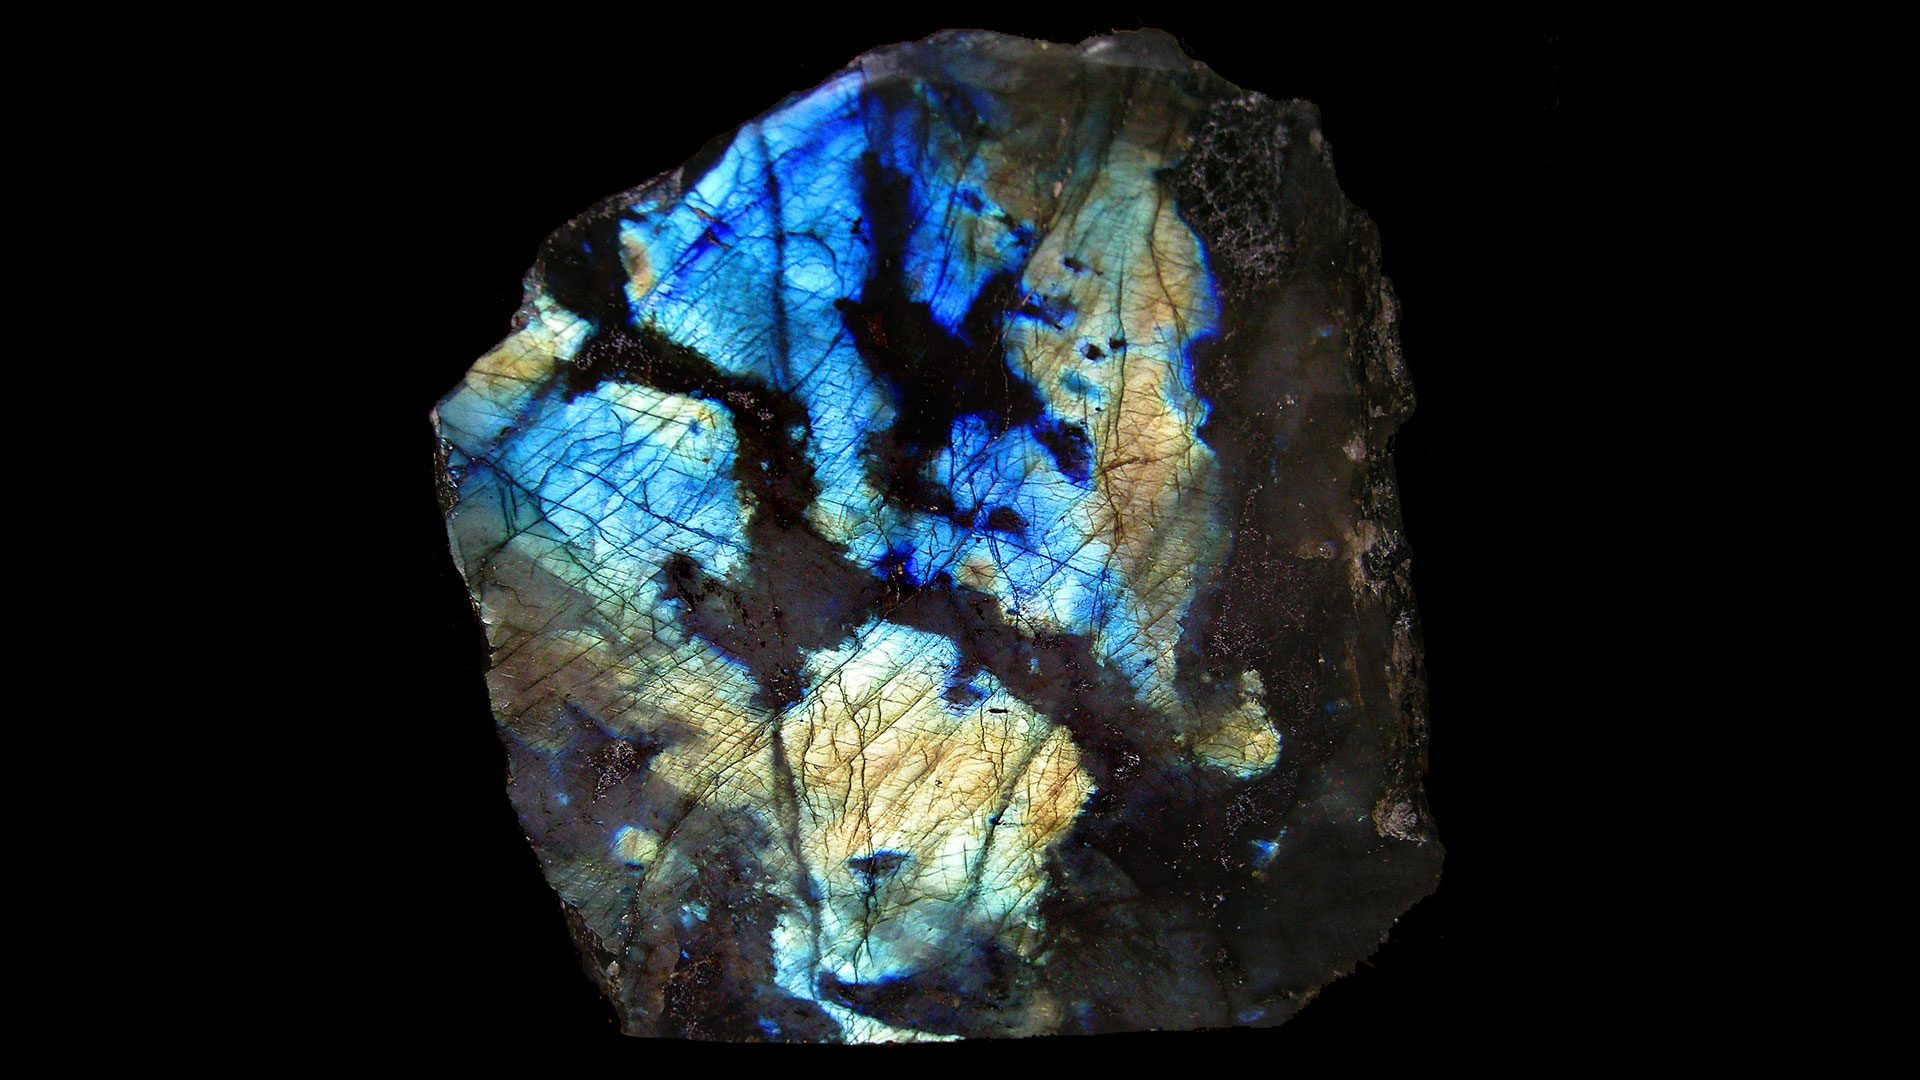 Labradorite Crystal Specimen - Mineral Specimen - Original Photo by Prokofiev